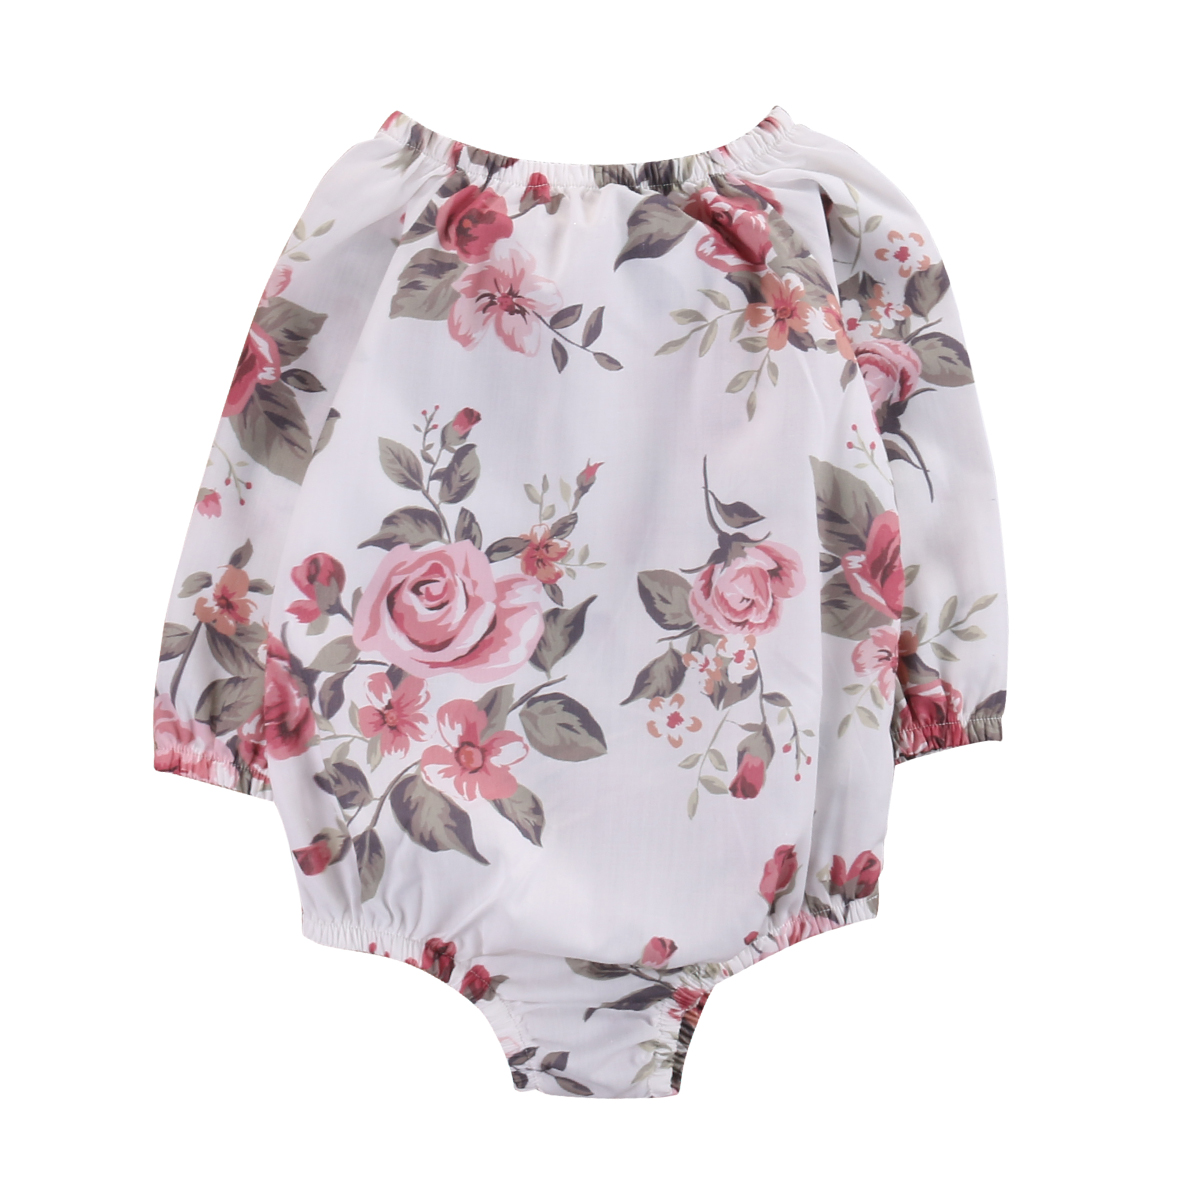 Newborn Baby Girls Summer Floral Clothes Clothing Long Sleeve Romper Jumpsuit Playsuit Outfit Sunsuit Whoelsale Drop ship 2017 floral baby romper newborn baby girl clothes ruffles sleeve bodysuit headband 2pcs outfit bebek giyim sunsuit 0 24m